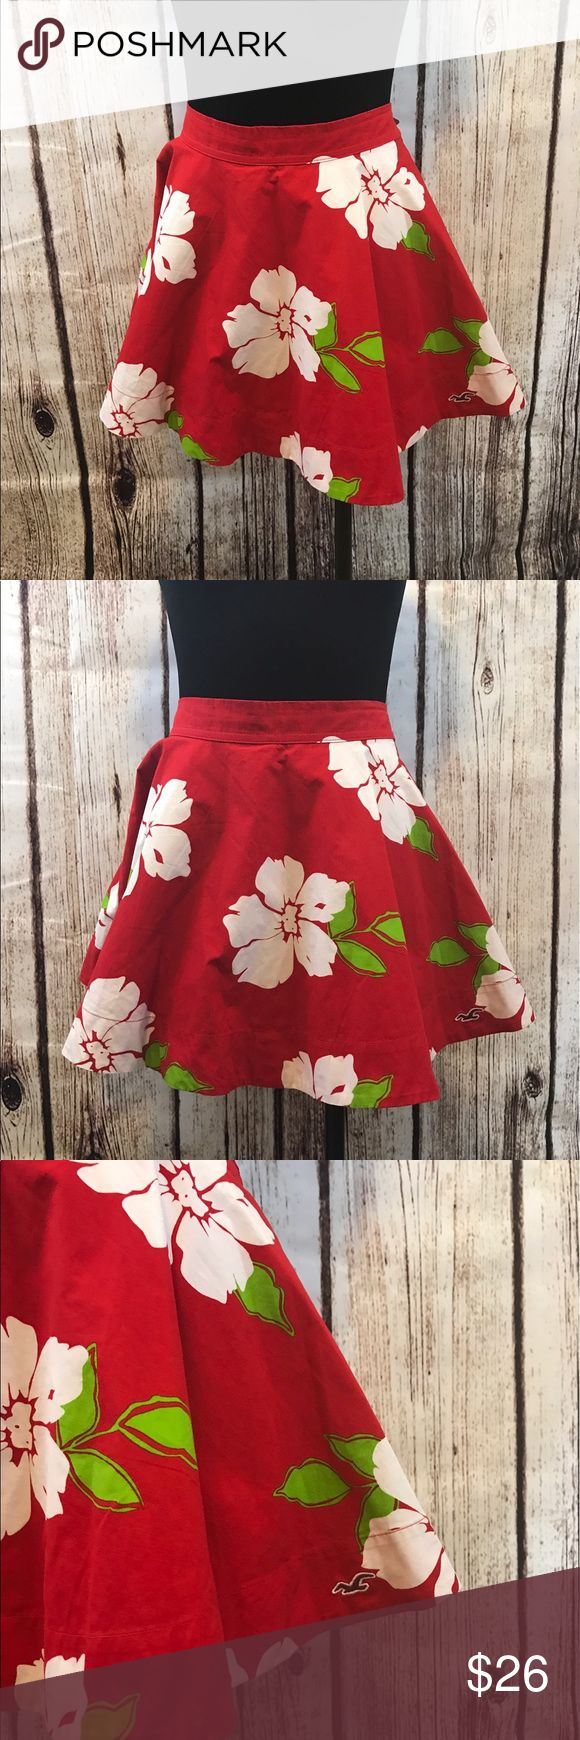 Supper cute floral Hollister skirt Very pretty bright red aloha circle mini skirt size medium has elastic in the back Hollister Skirts Midi